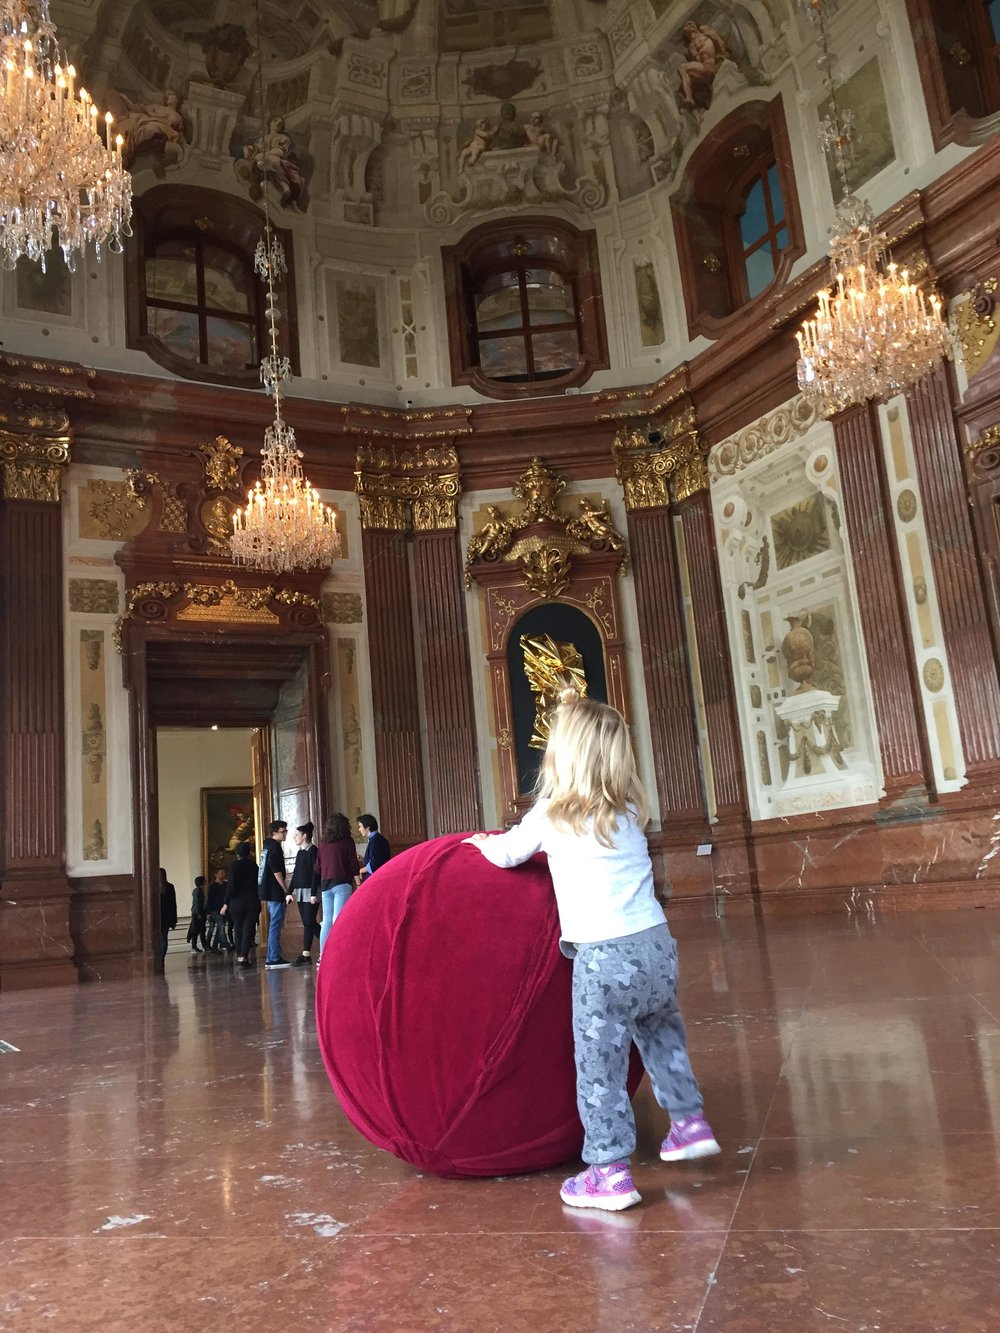 Her pushing around the giant balls in marble hall